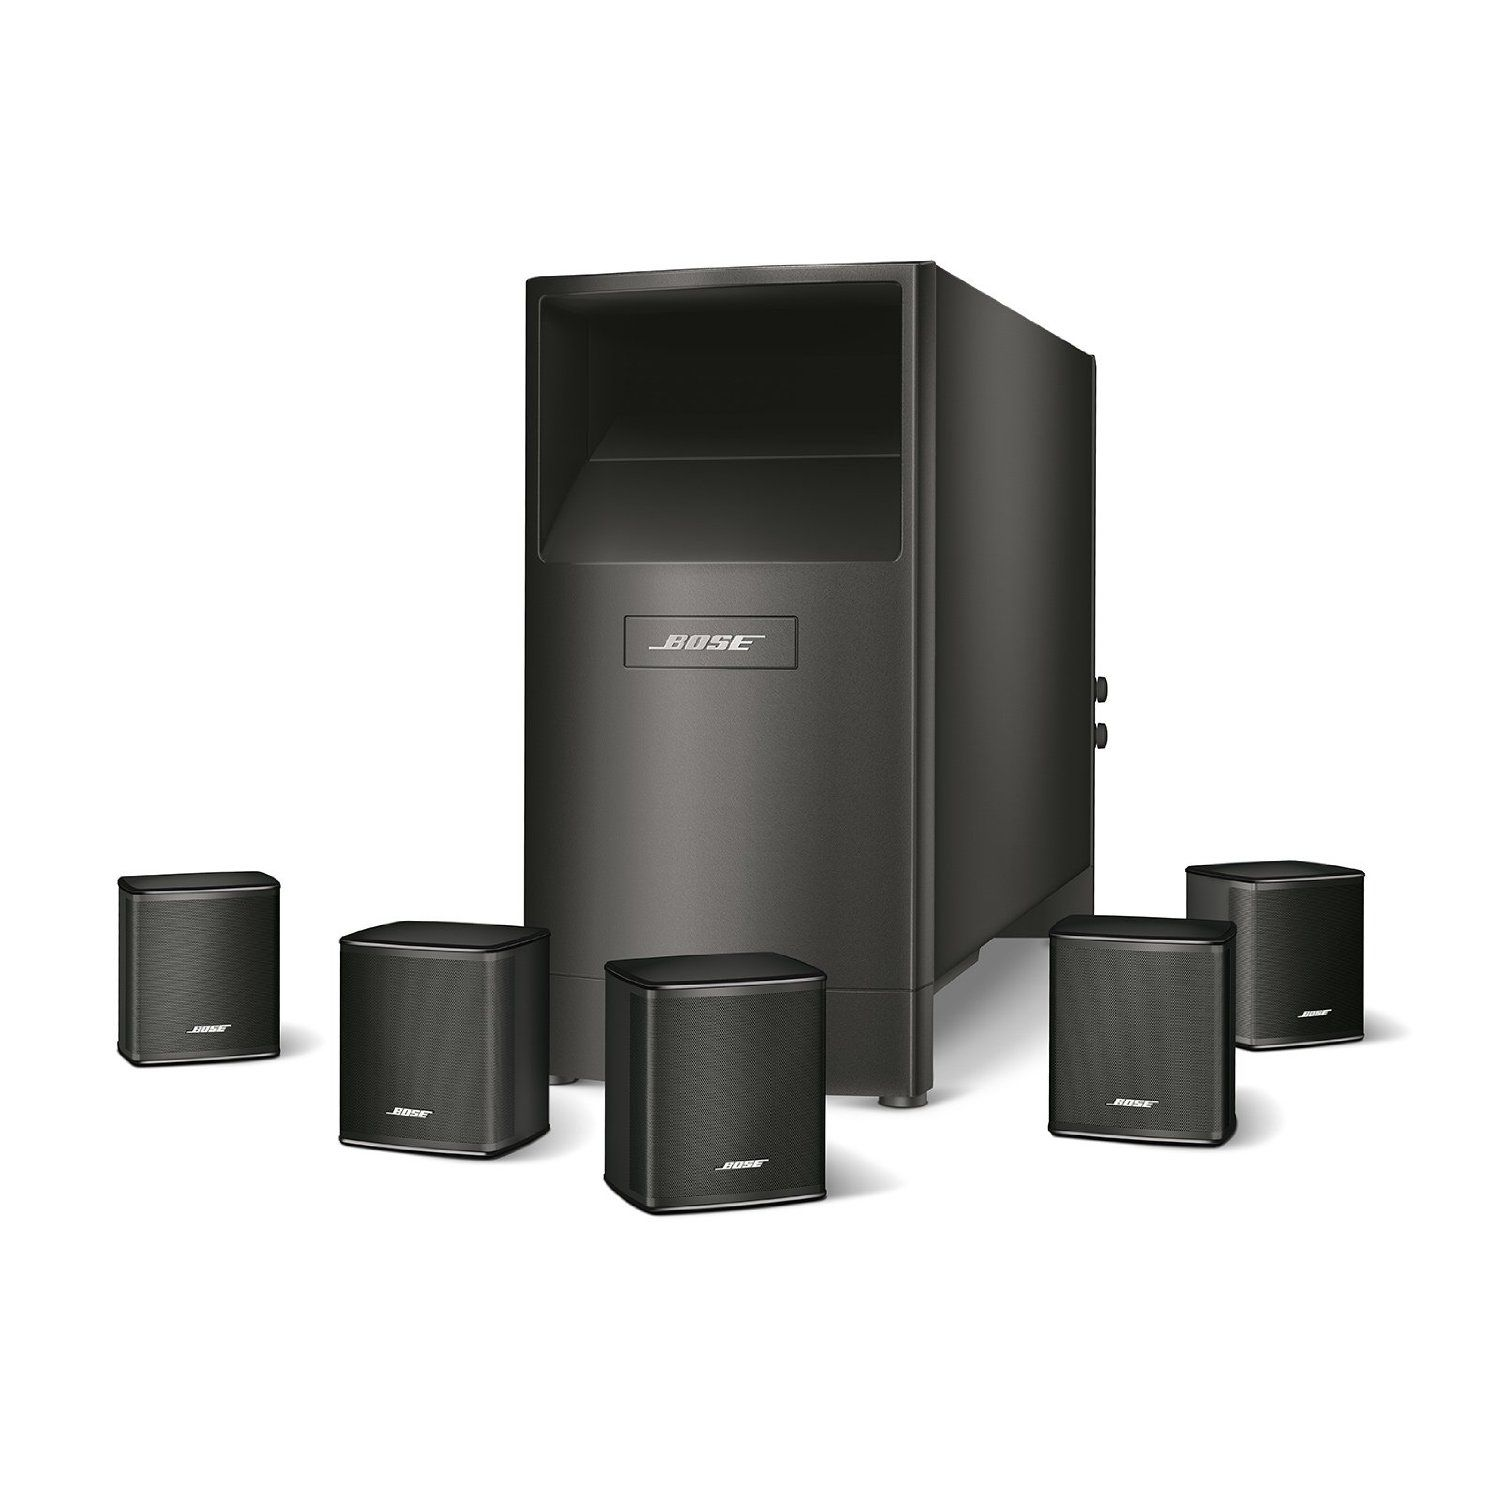 The 7 Best Home Theater Starter Kits to Buy in